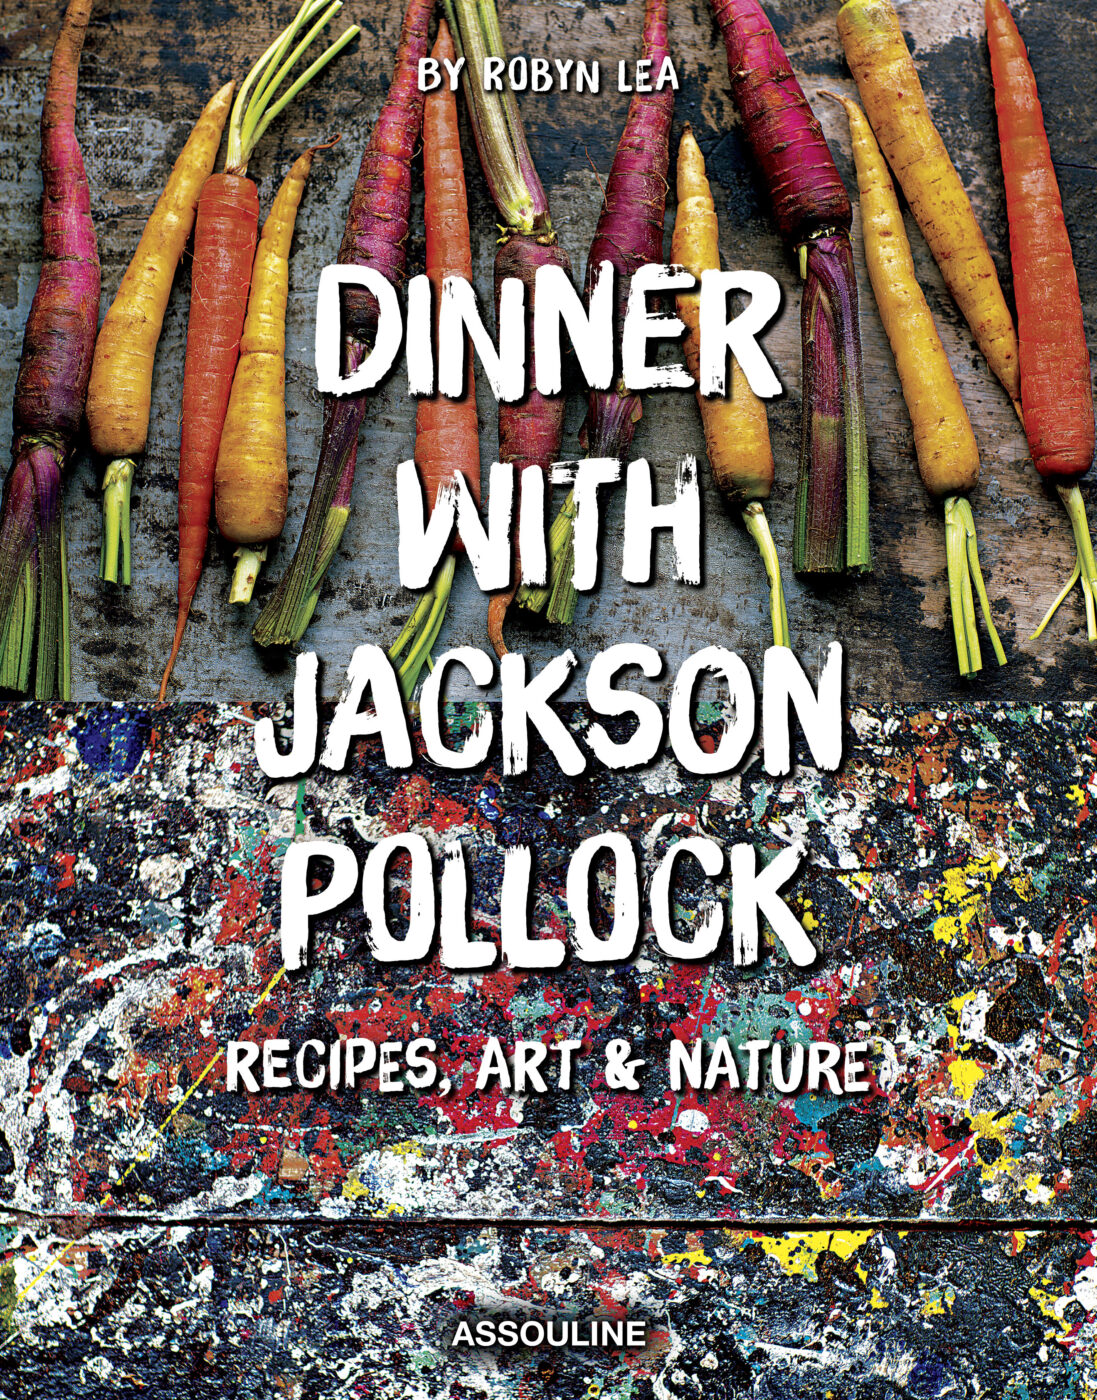 The cover of Dinner with Jackson Pollock cookbook by Robyn Lea